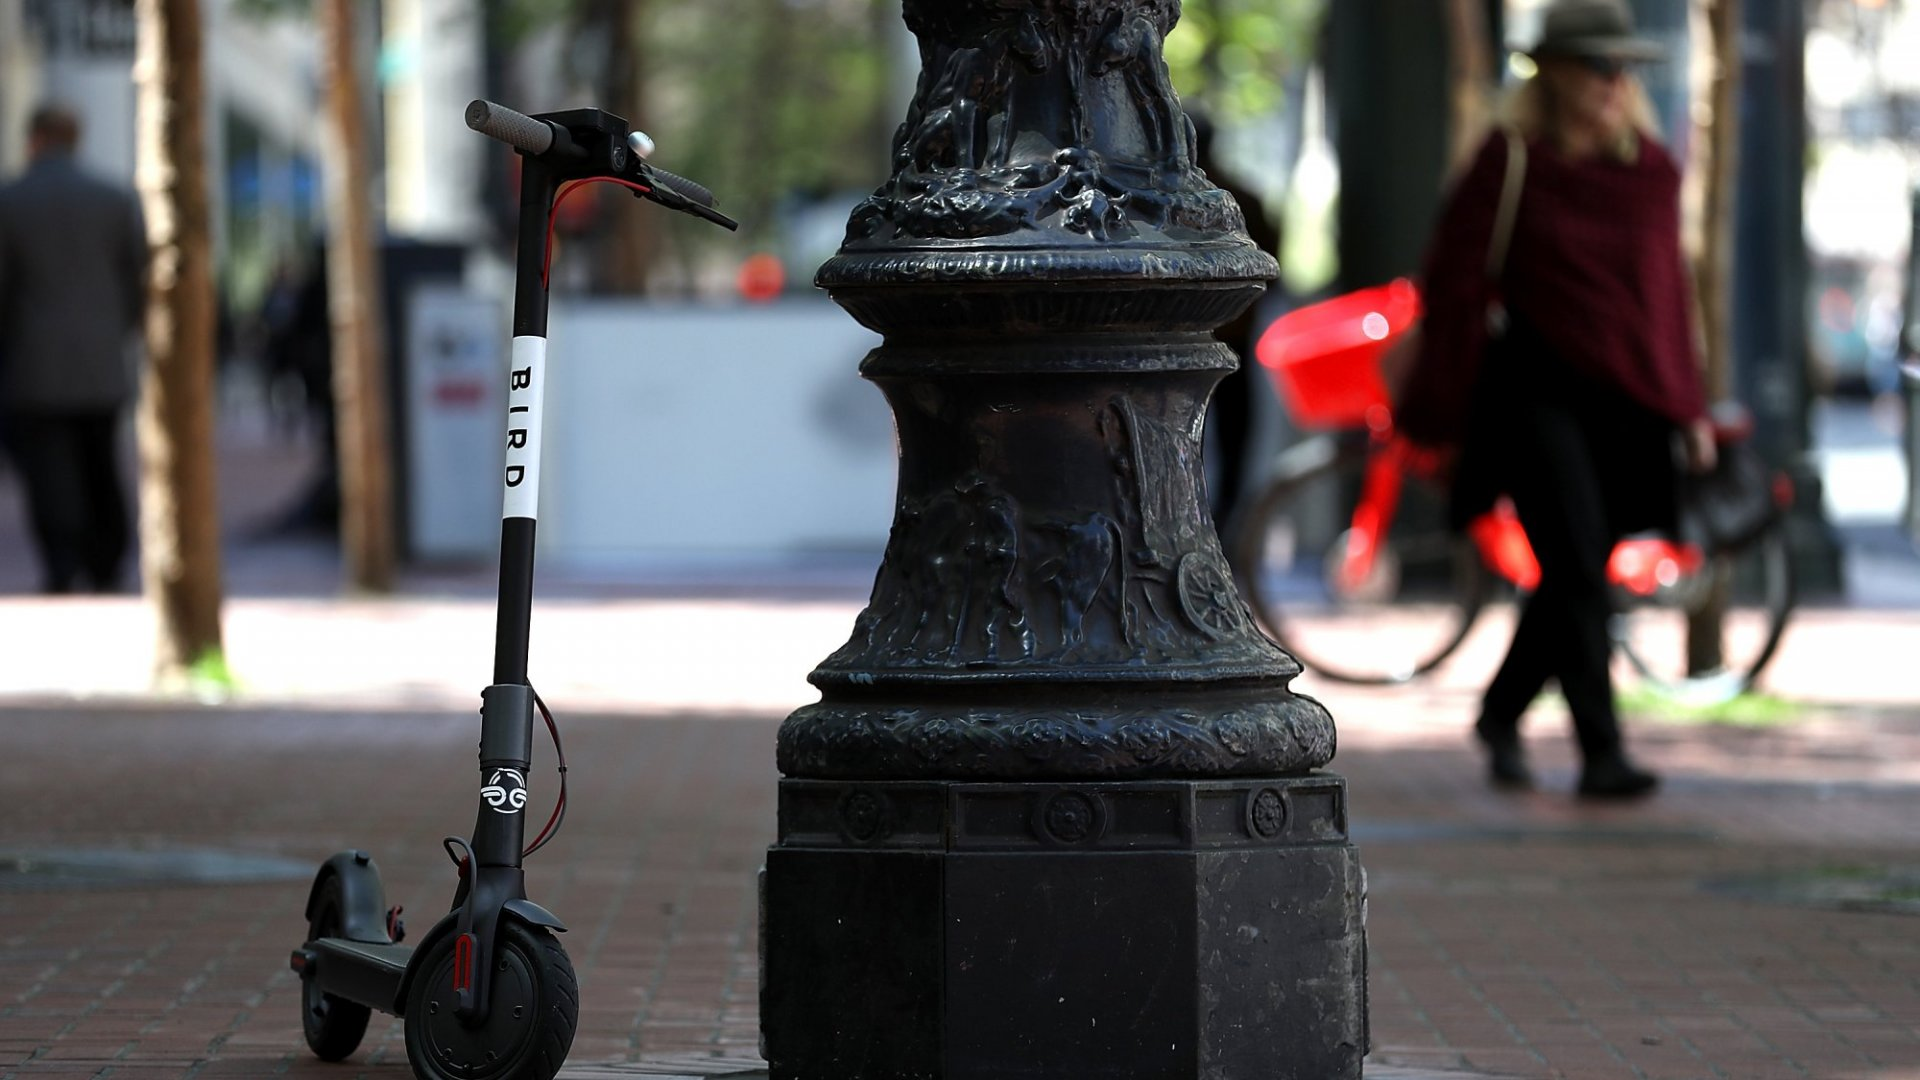 Bird e-scooters are now in several states spanning the U.S.